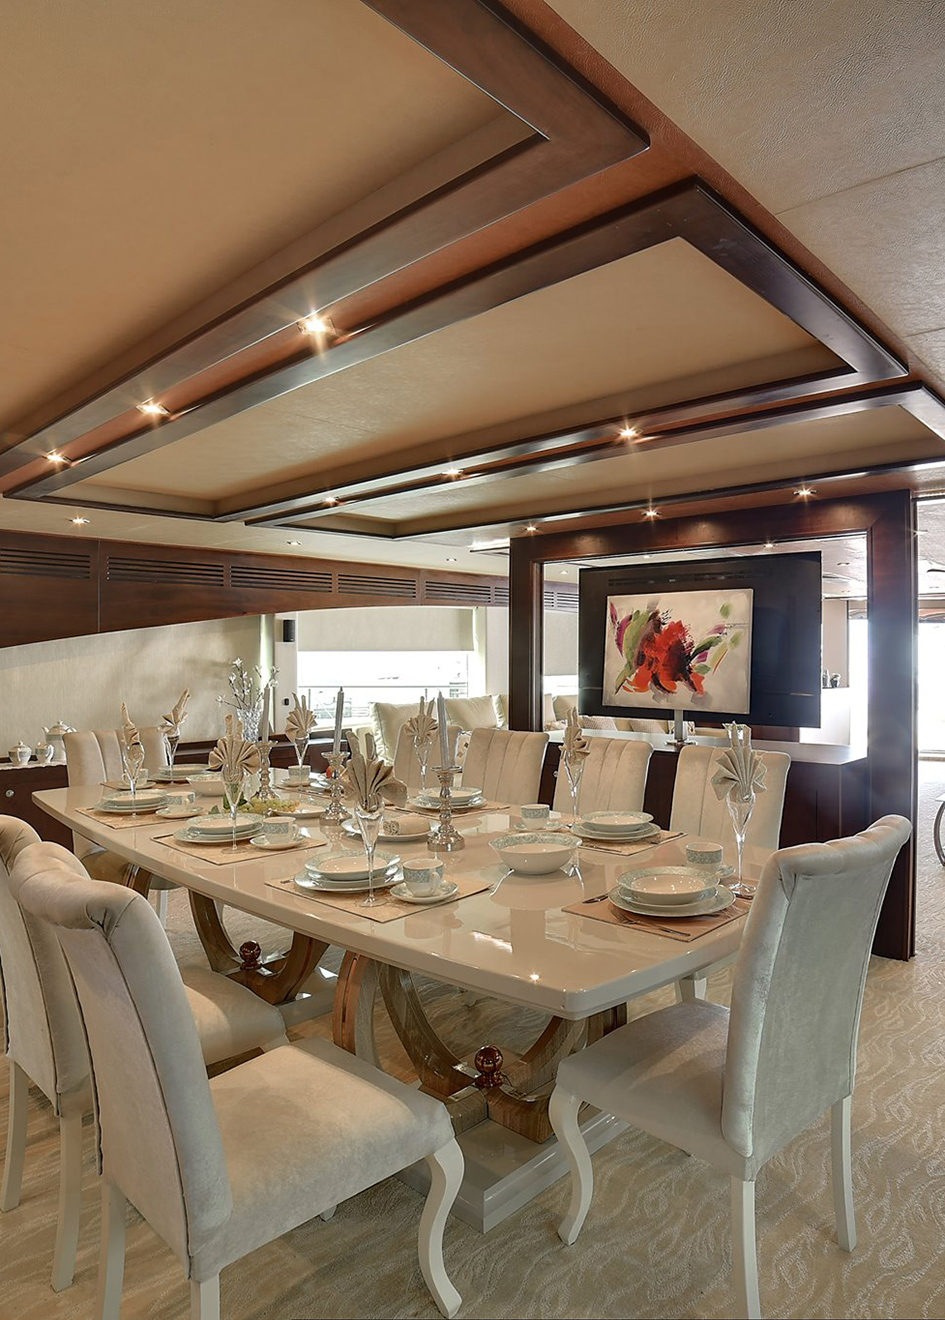 the-dining-area-of-the-as-130-yacht-from-al-shaali-marine